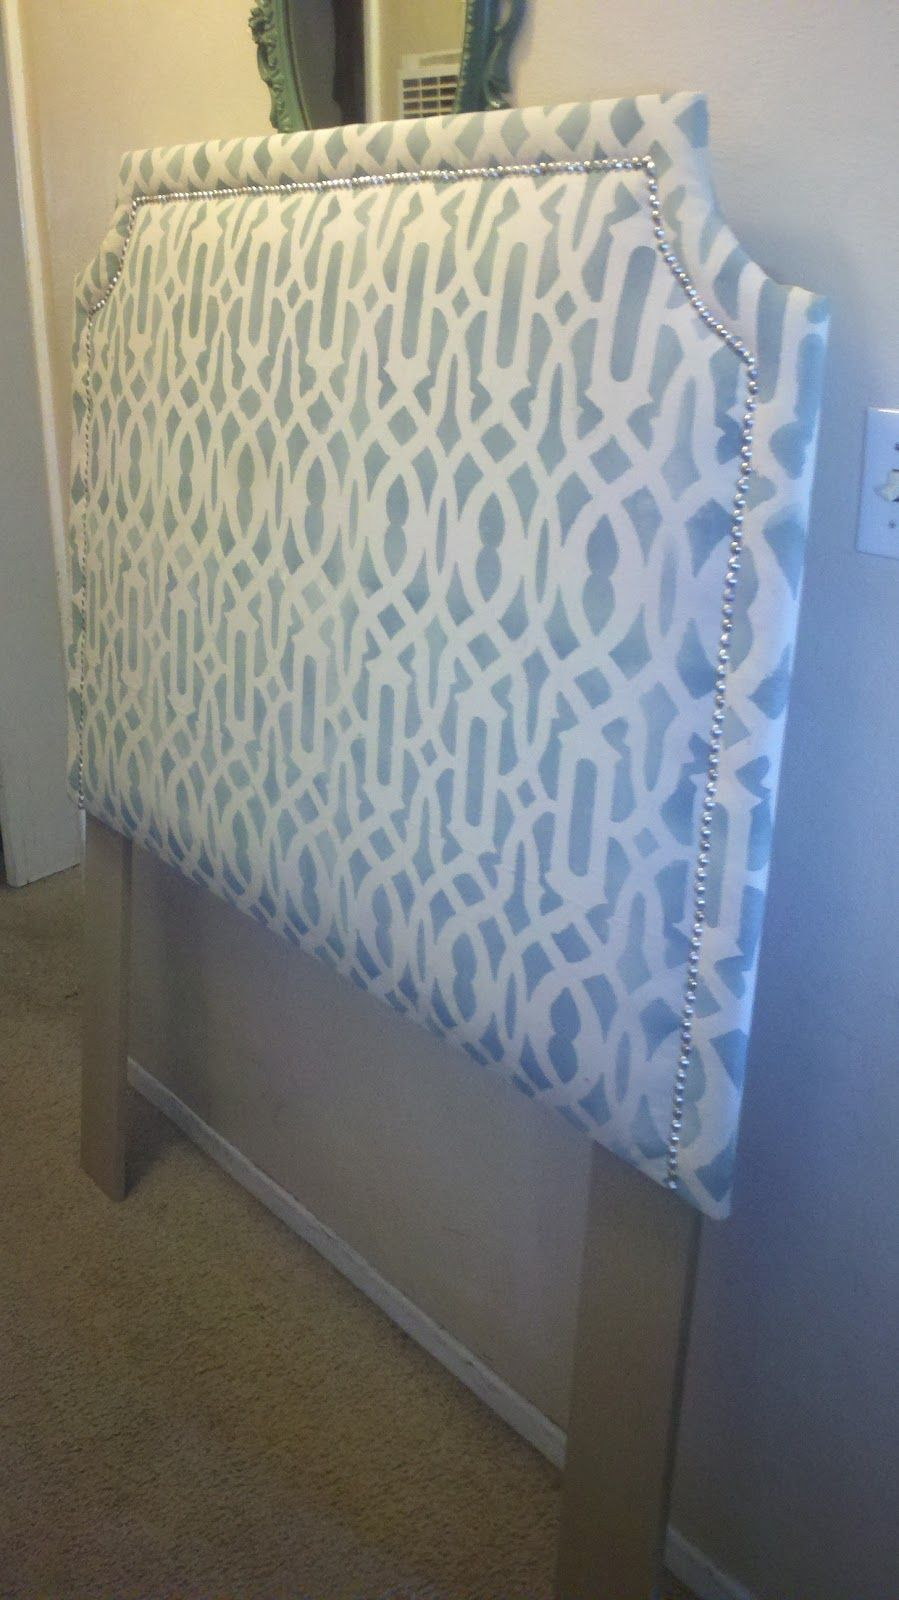 and diy piece fabric buttons the tufted faux styrofoam made headboards cheap apple pin tree headboard insulation with board a of by over